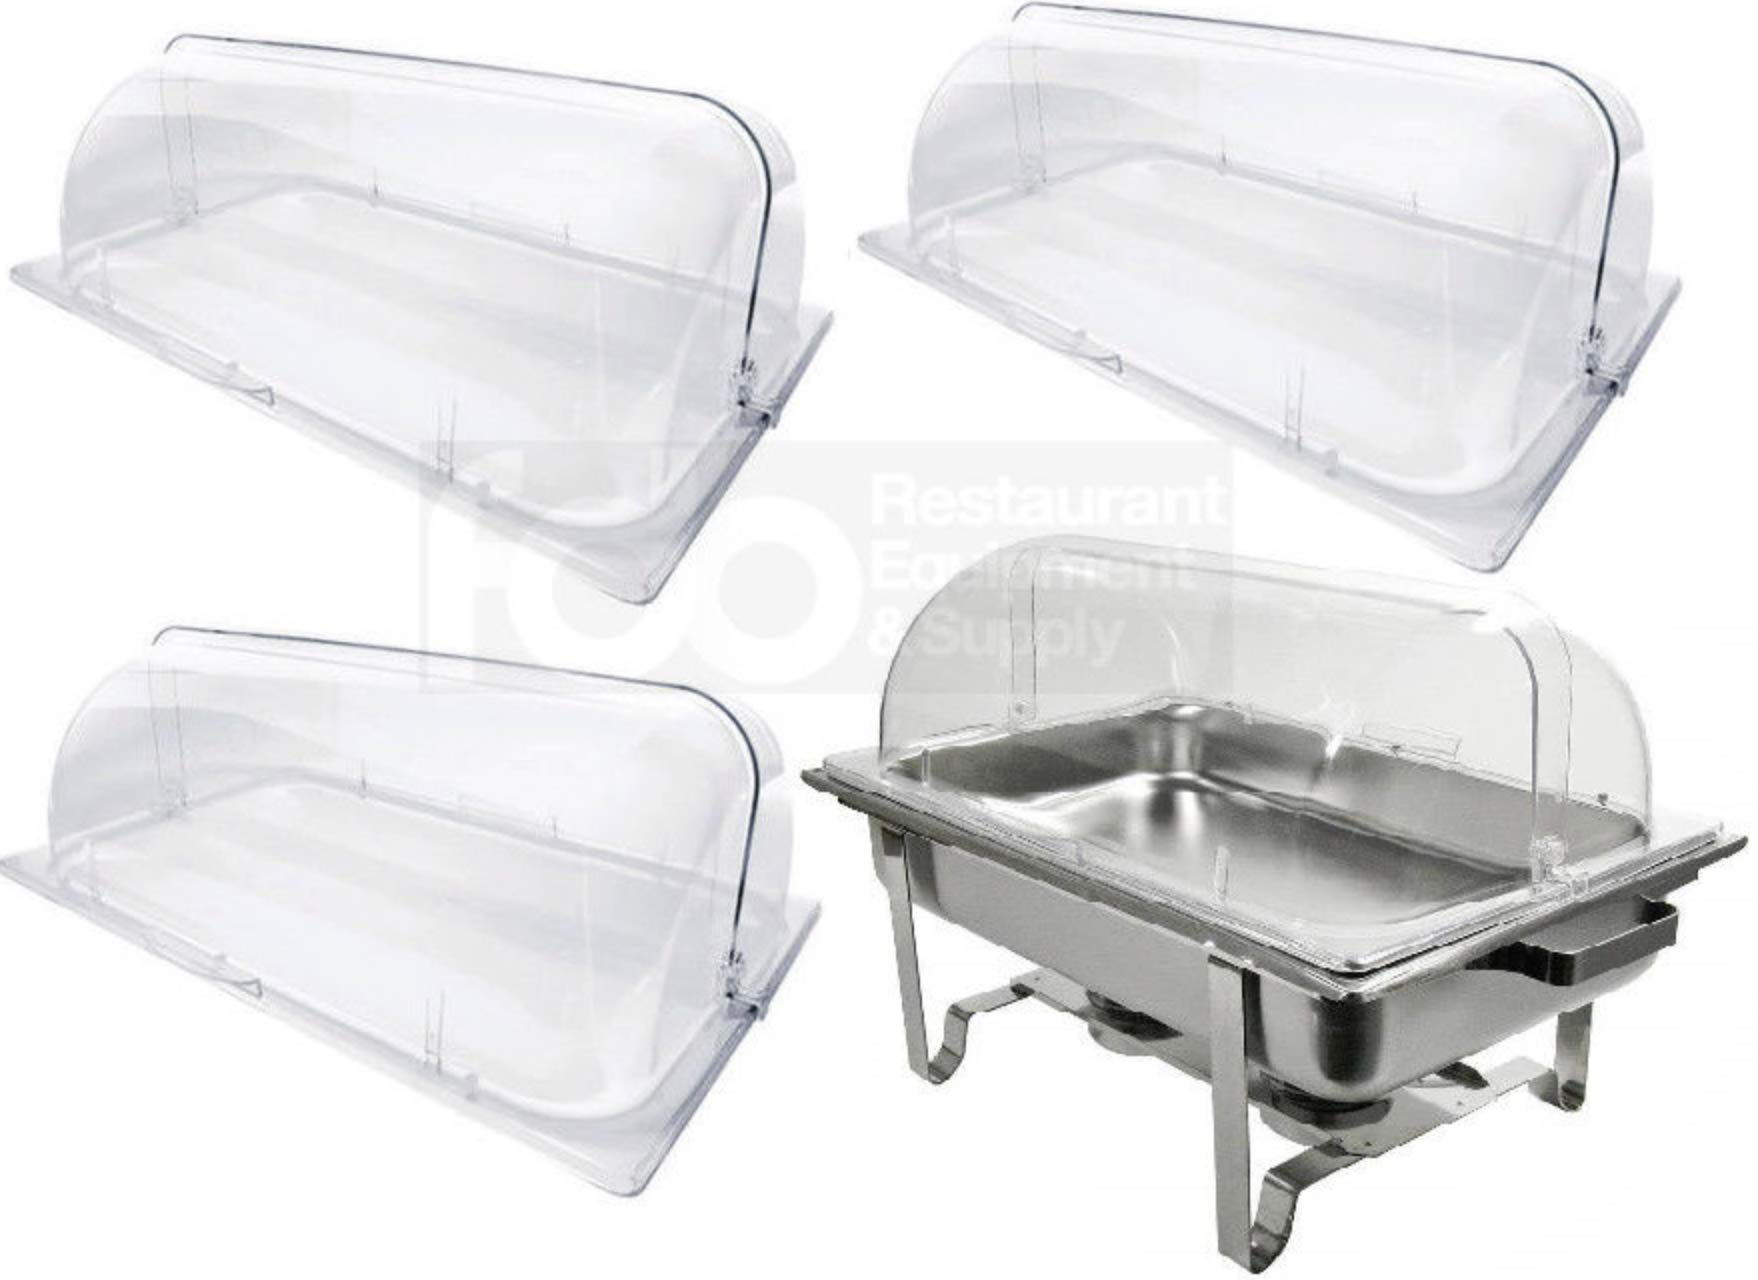 4 PACK Full Size Roll Top Chafing Dish Clear Plastic Pan Display Cover Chafer by lowpricesupply